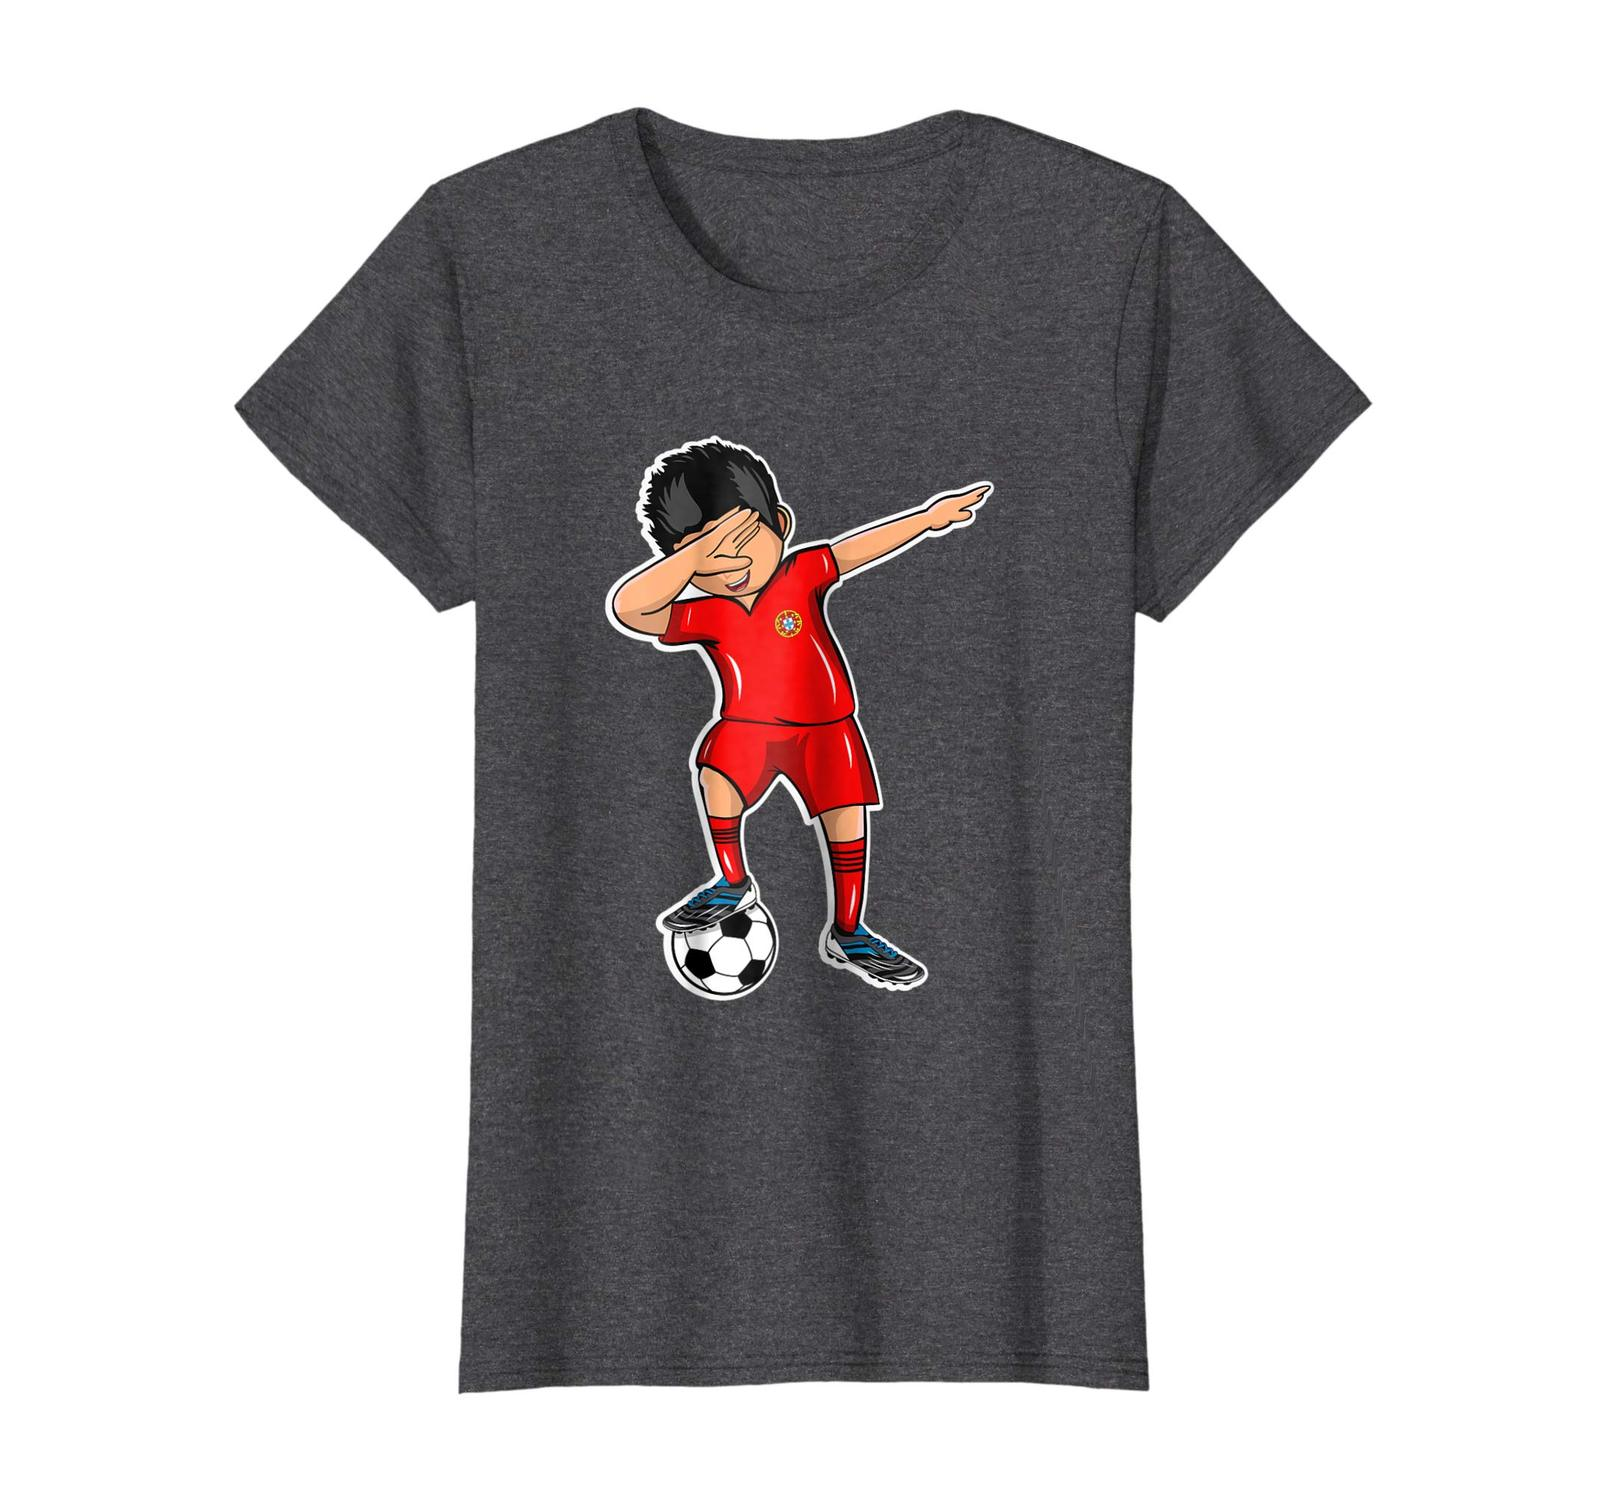 New Shirts - Dabbing Soccer Boy Portugal Jersey T Shirt Football Fan Wowen